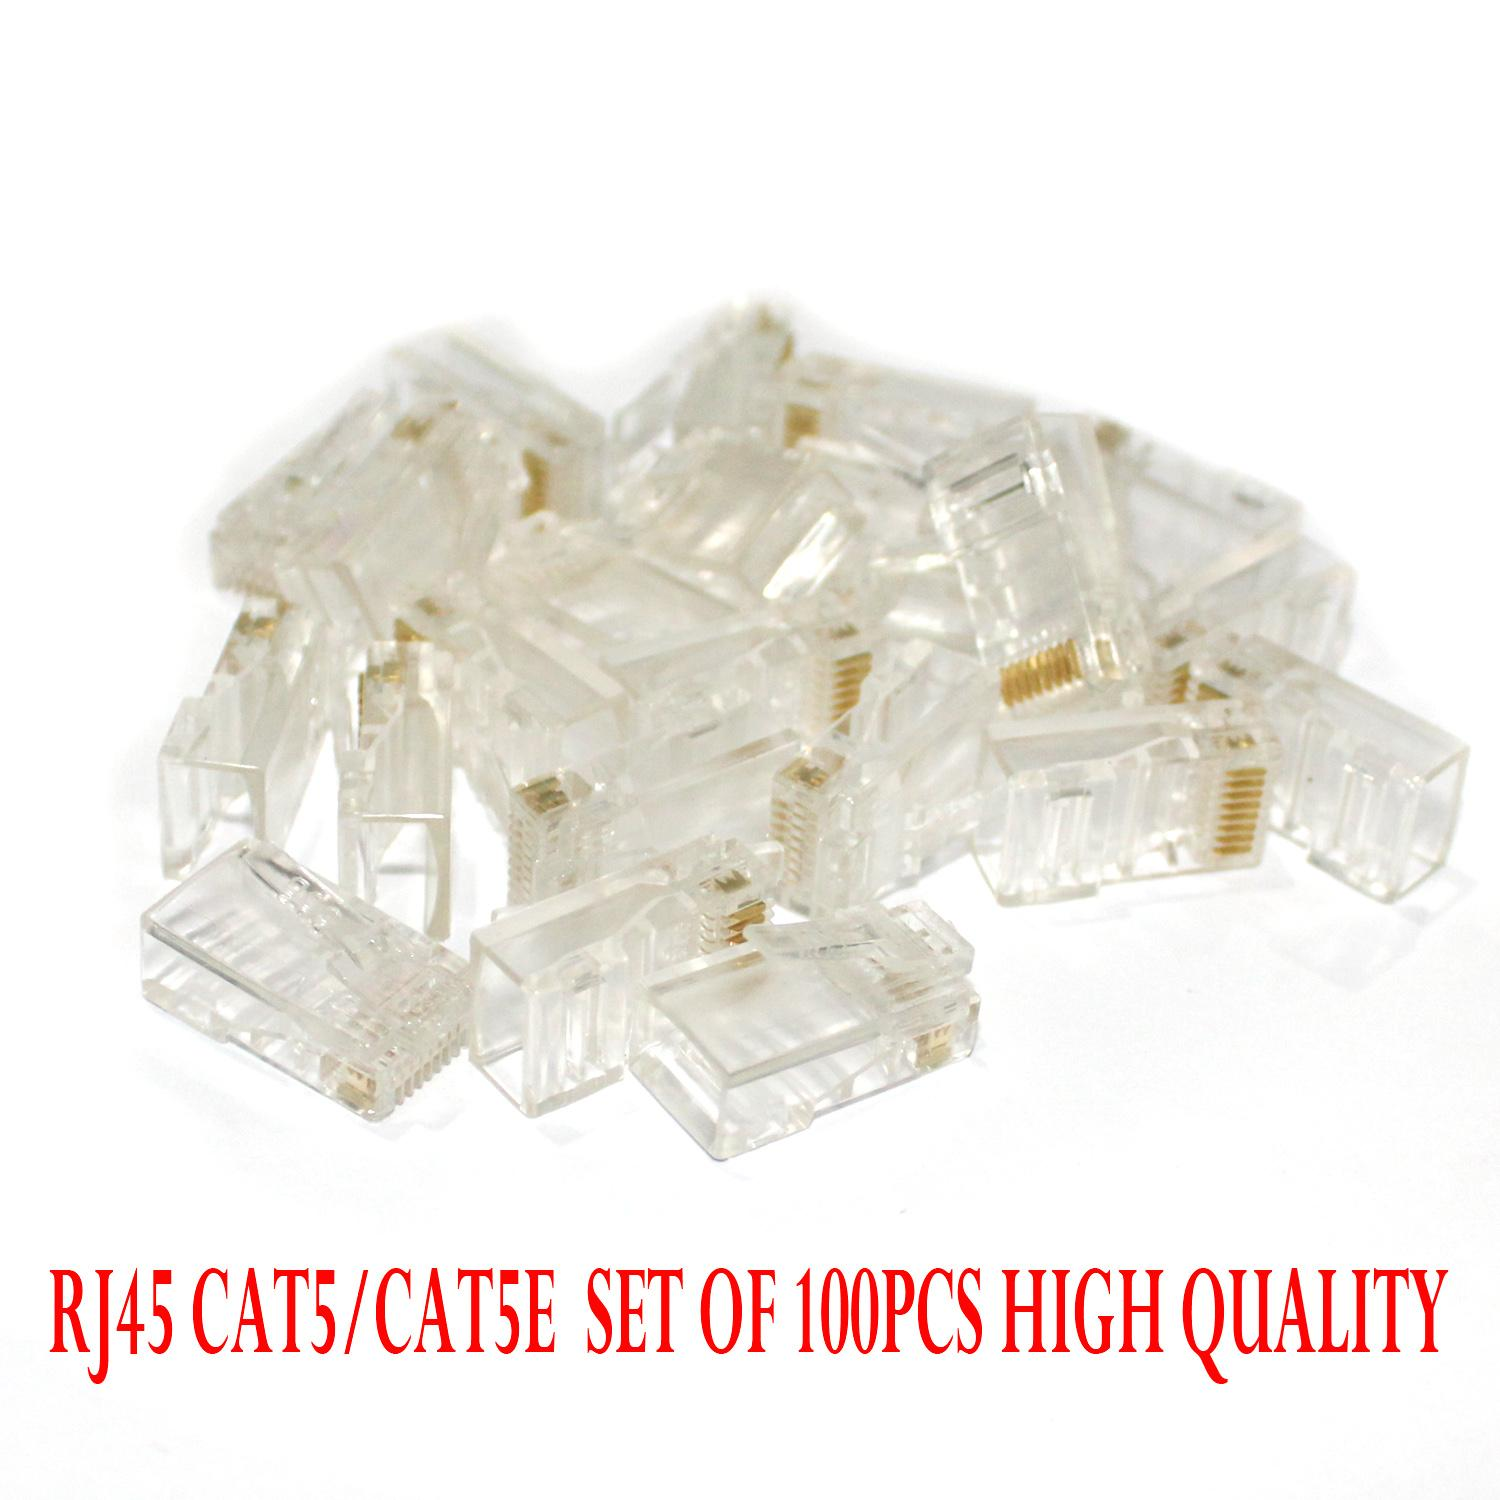 Ethernet Cable For Sale Etherner Adapters Prices Brands Specs Kabel Lan 3m Cat 5e 1 Roll 305 Meter Grey Dan Blue 100 Pcs Rj45 Rj 45 Connector Cat5e Cat5 E High Quality